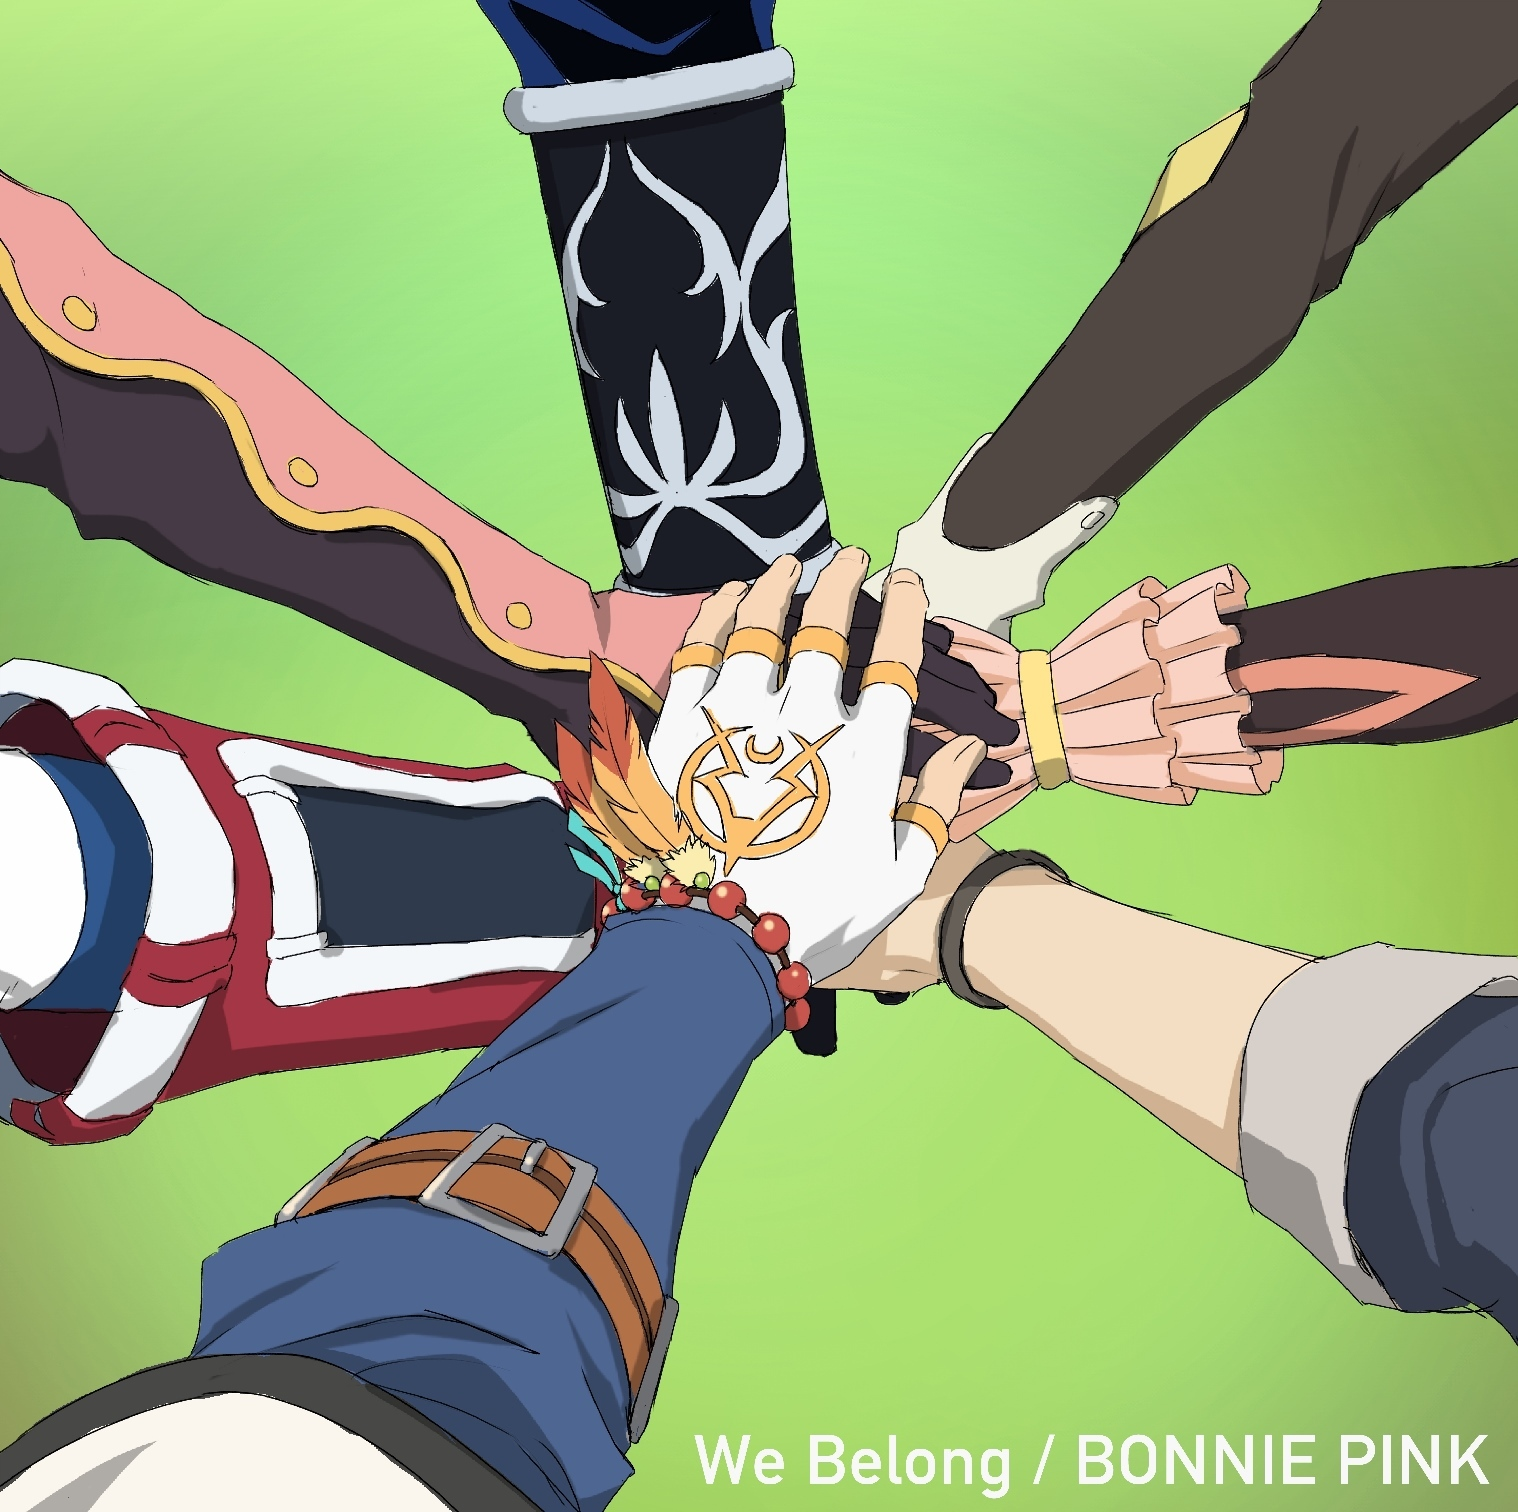 BONNIE PINK「We Belong」 ©いのまたむつみ ©藤島康介 ©BANDAI NAMCO Entertainment Inc.